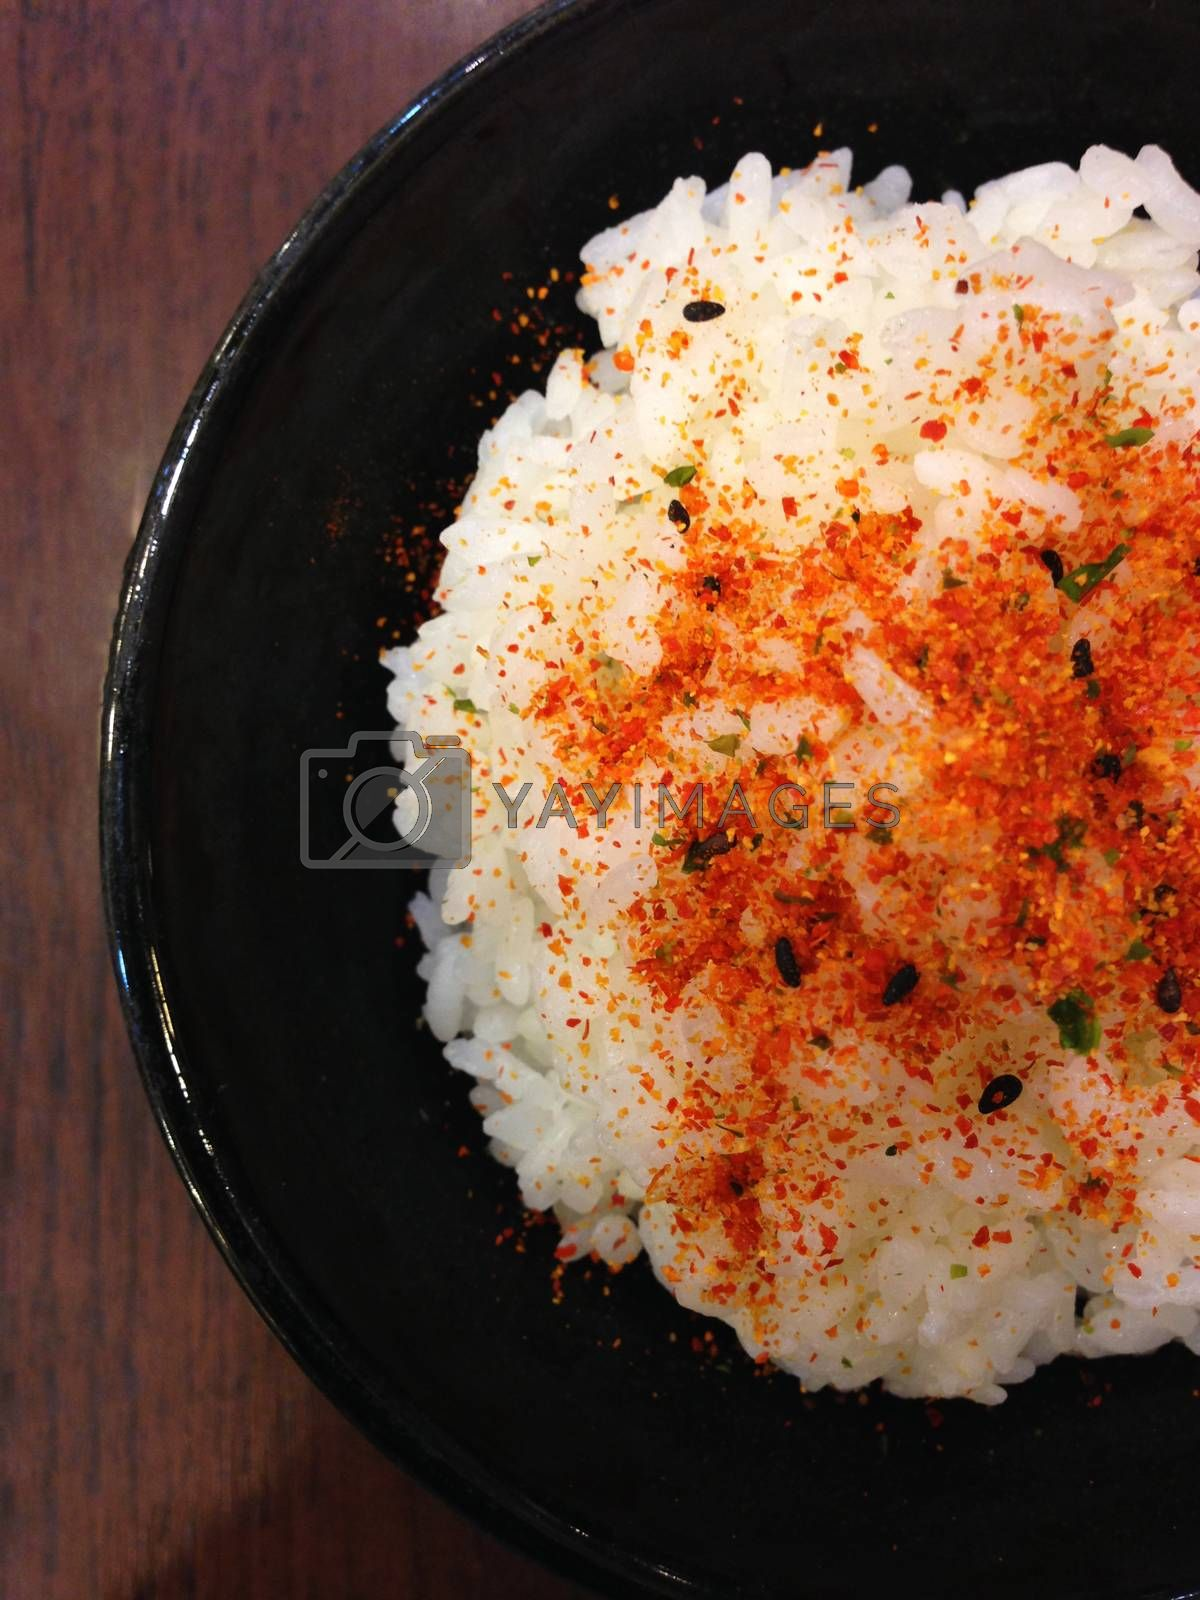 Royalty free image of the bowl of japanese food with chilli power by pandara